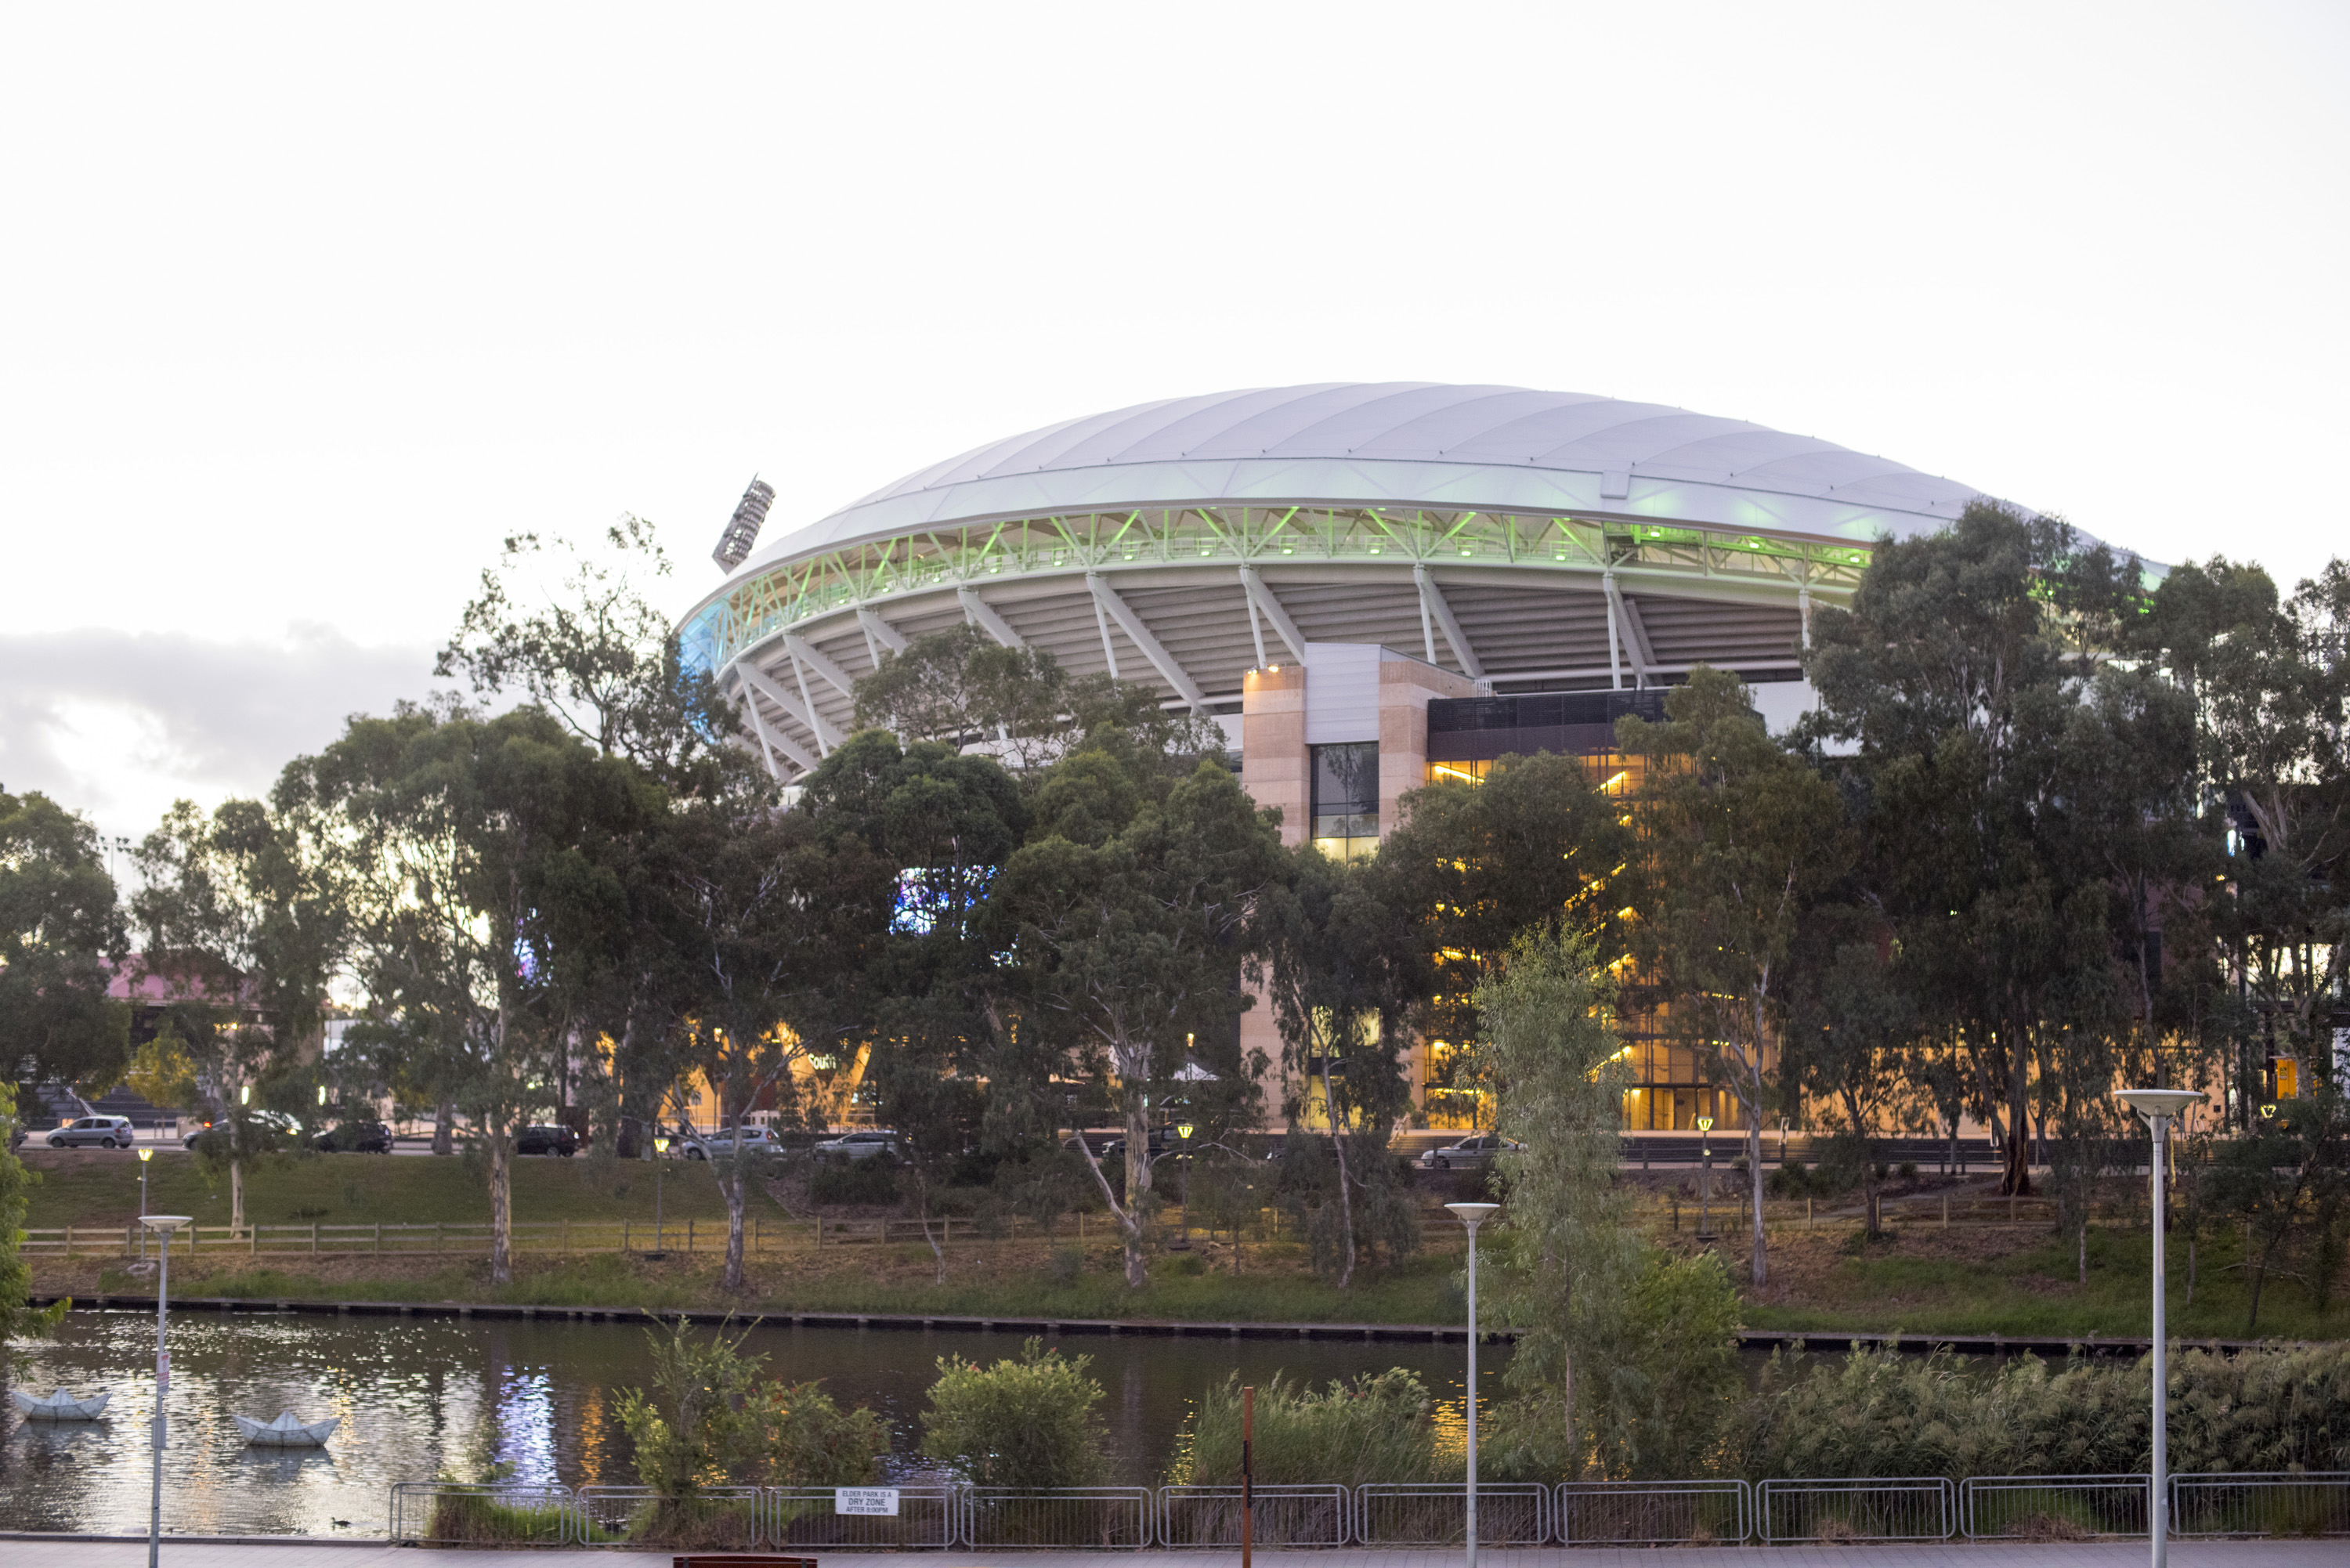 View of the Adelaide Oval Cricket Ground over leafy green shrubs in the Adelaide, Australia parklands providing an international sports venue